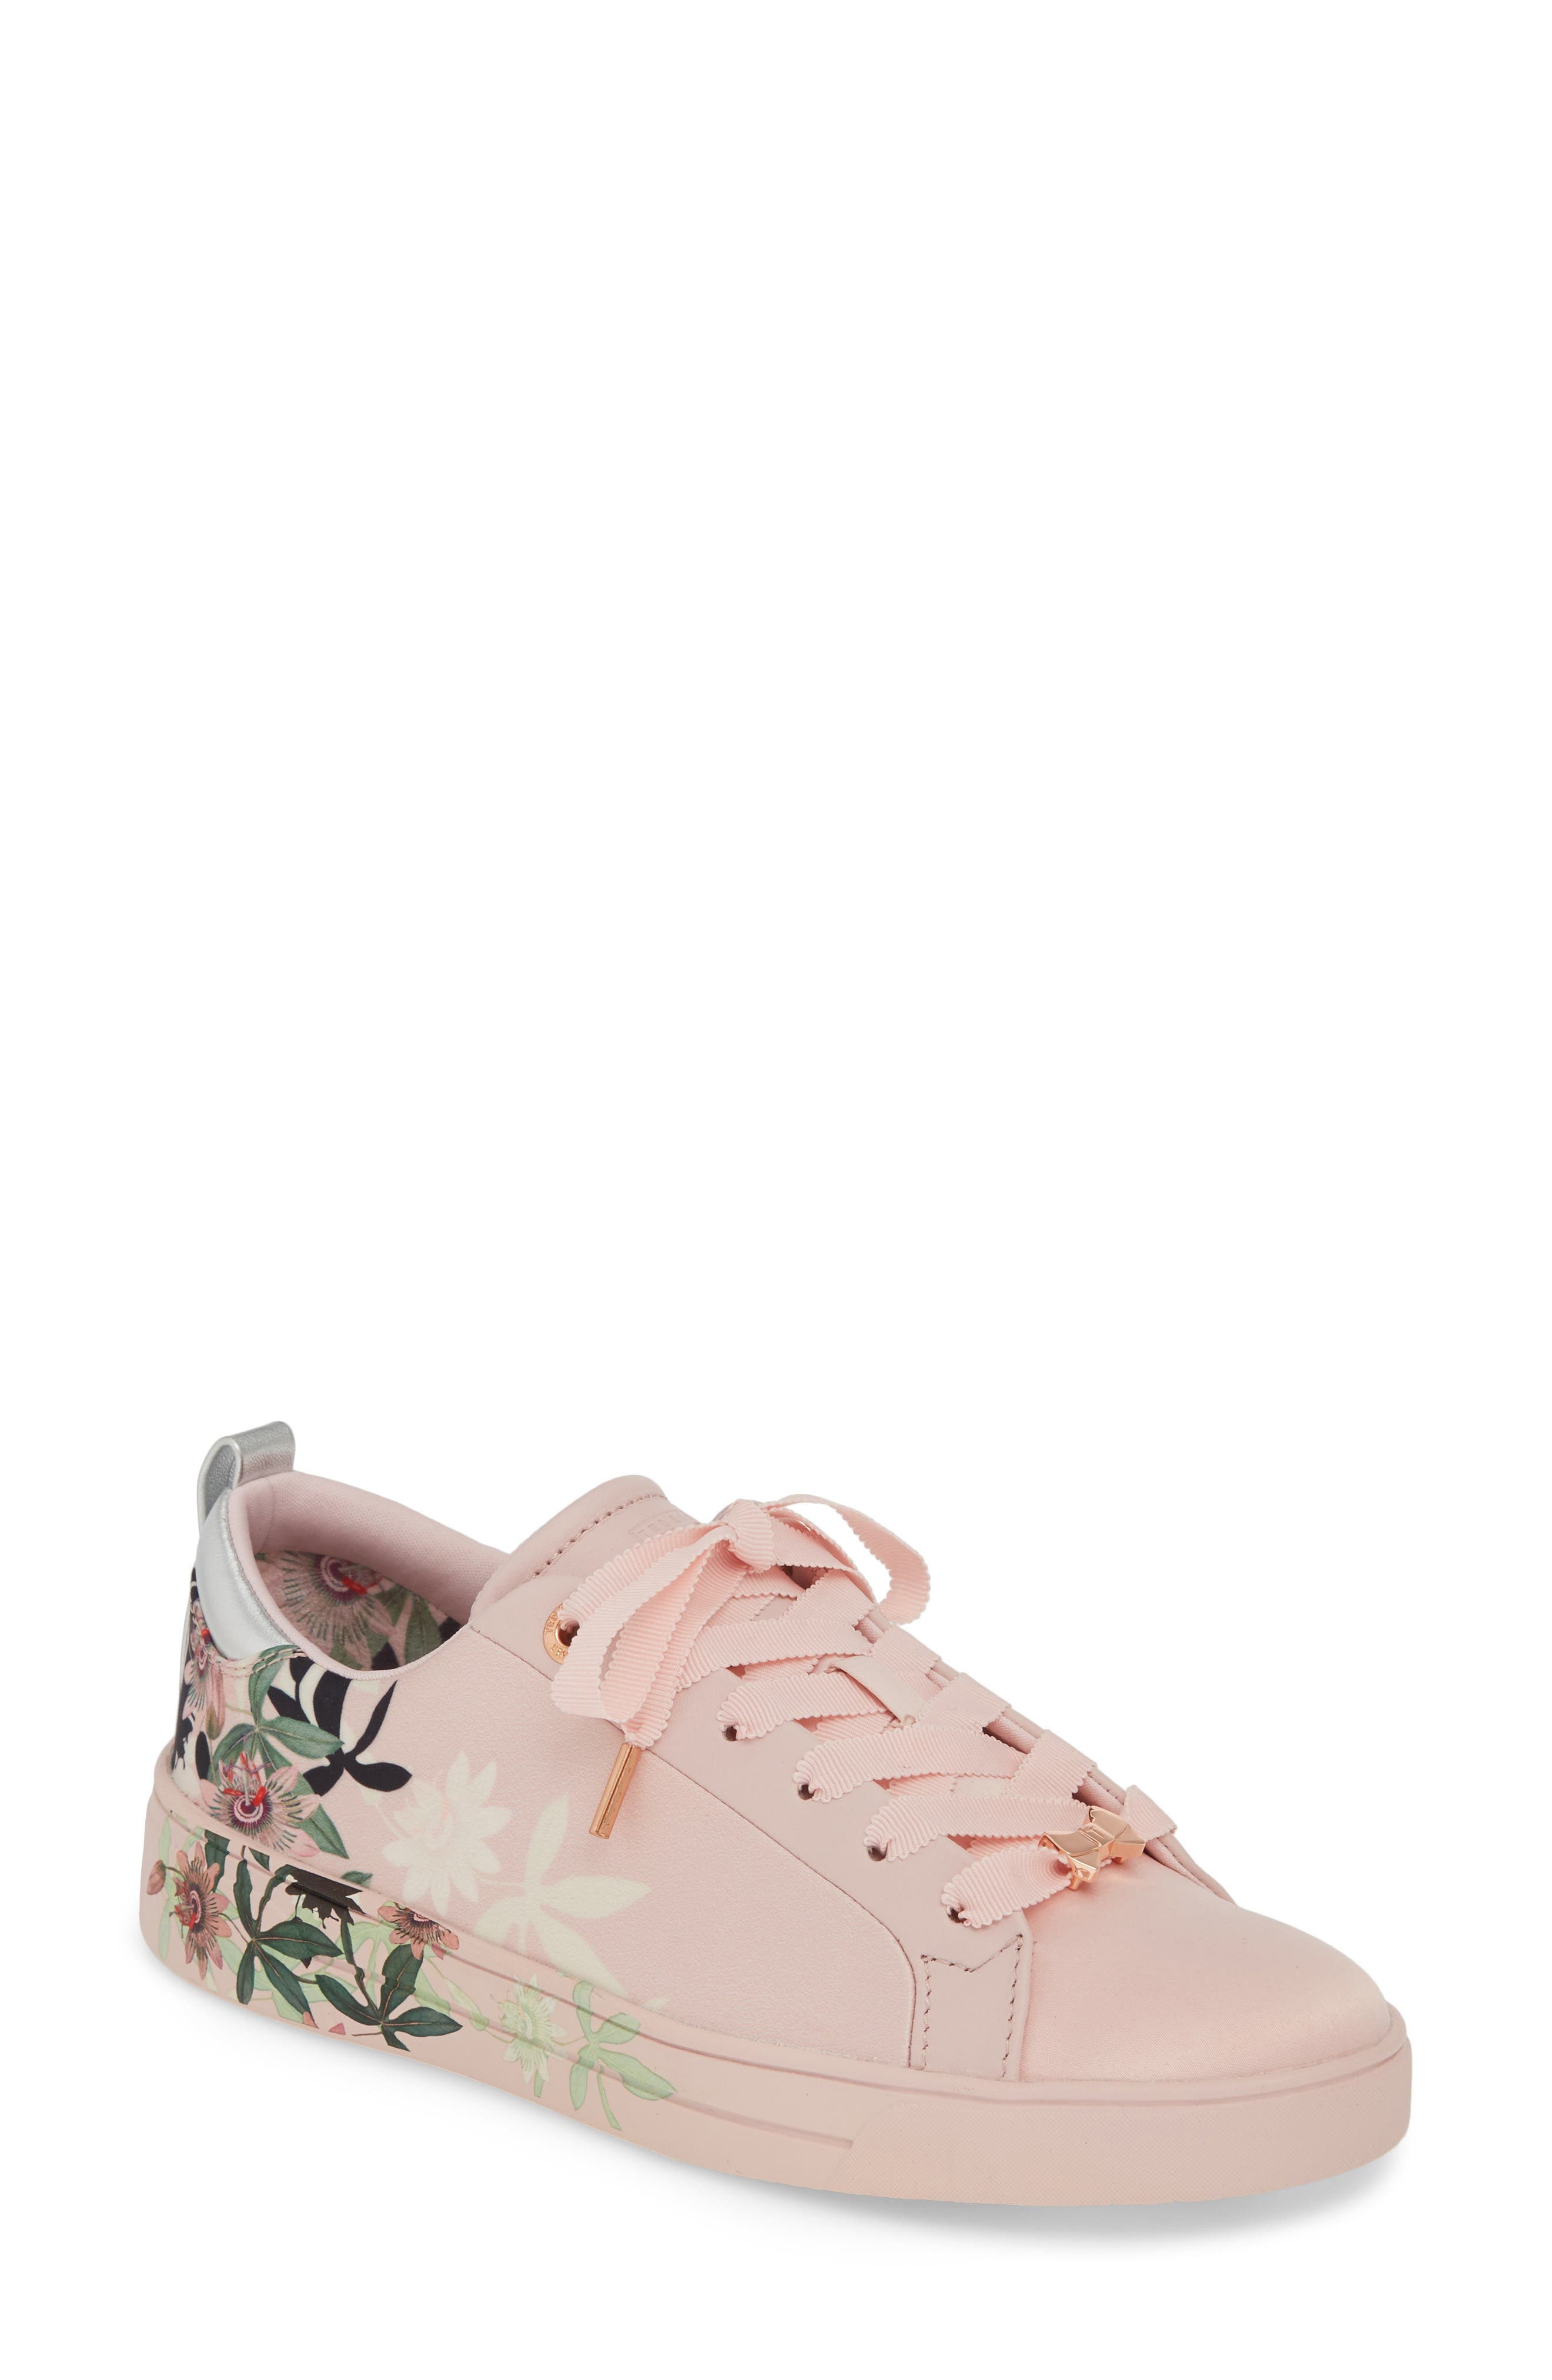 Ted Baker London Rialy Sneaker, Pink